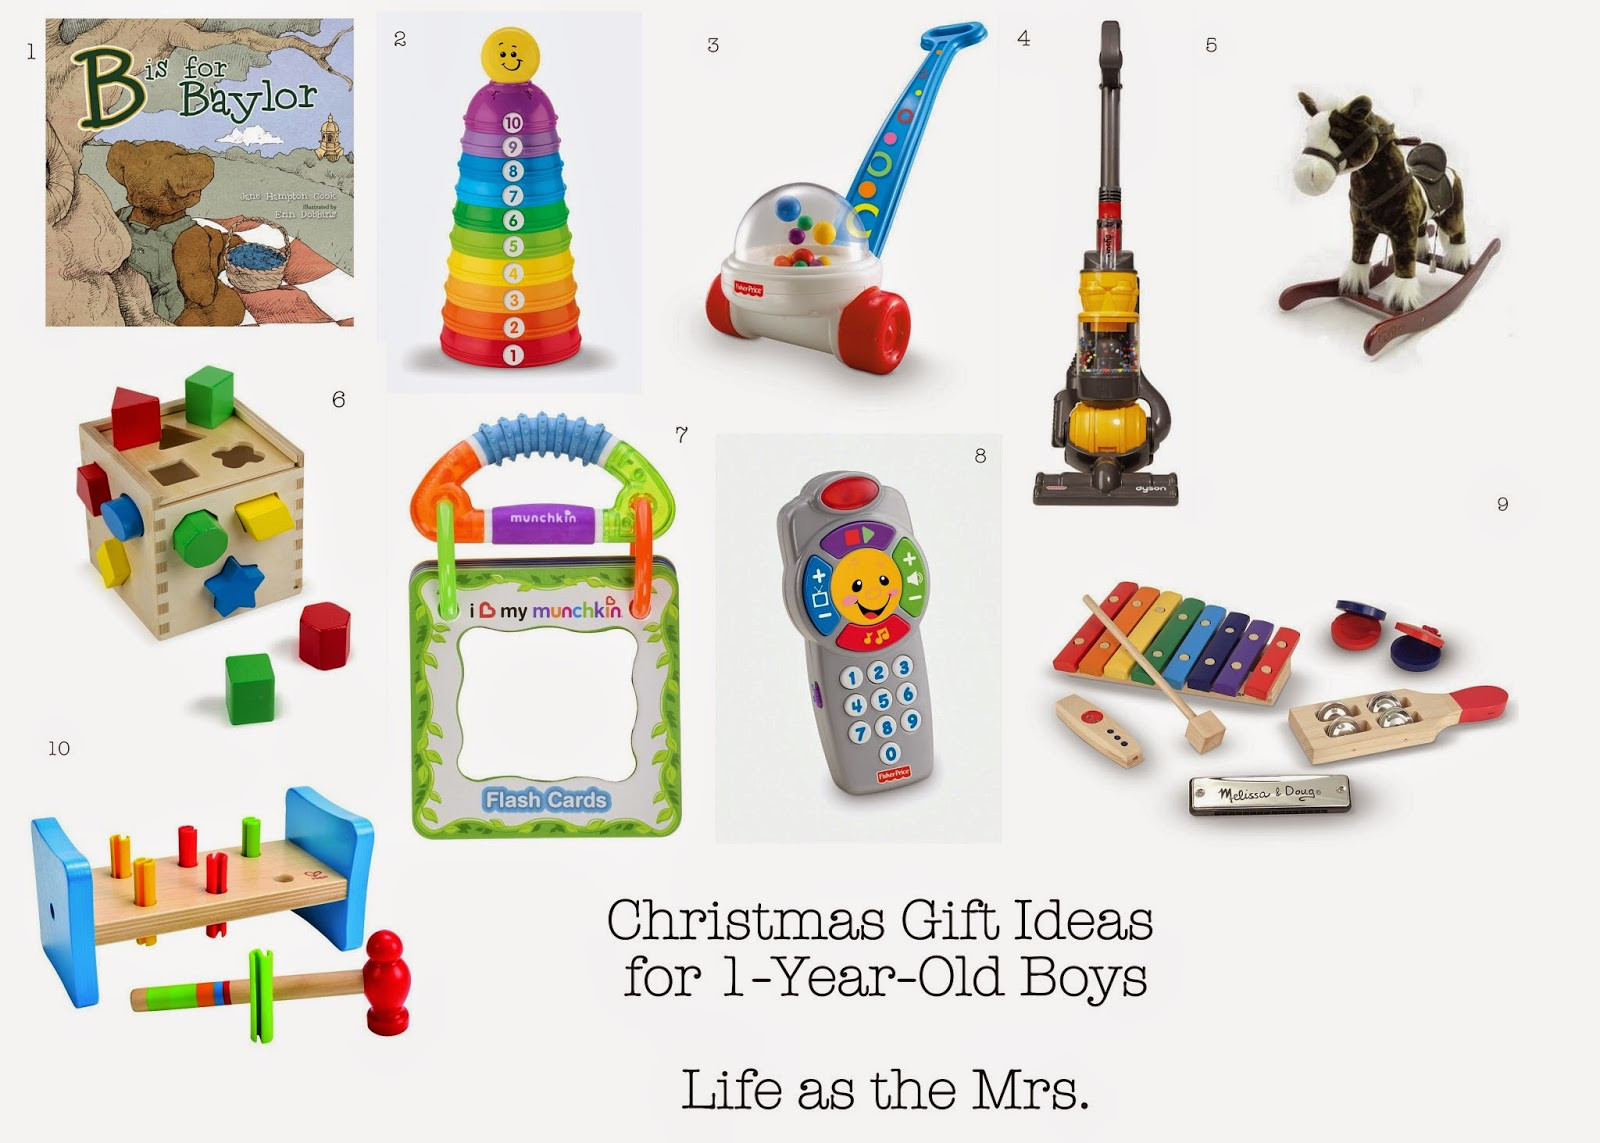 Best ideas about Christmas Gift Ideas For 1 Year Old Boys . Save or Pin Life as the Mrs Christmas Gift Ideas for e Year Old Boys Now.